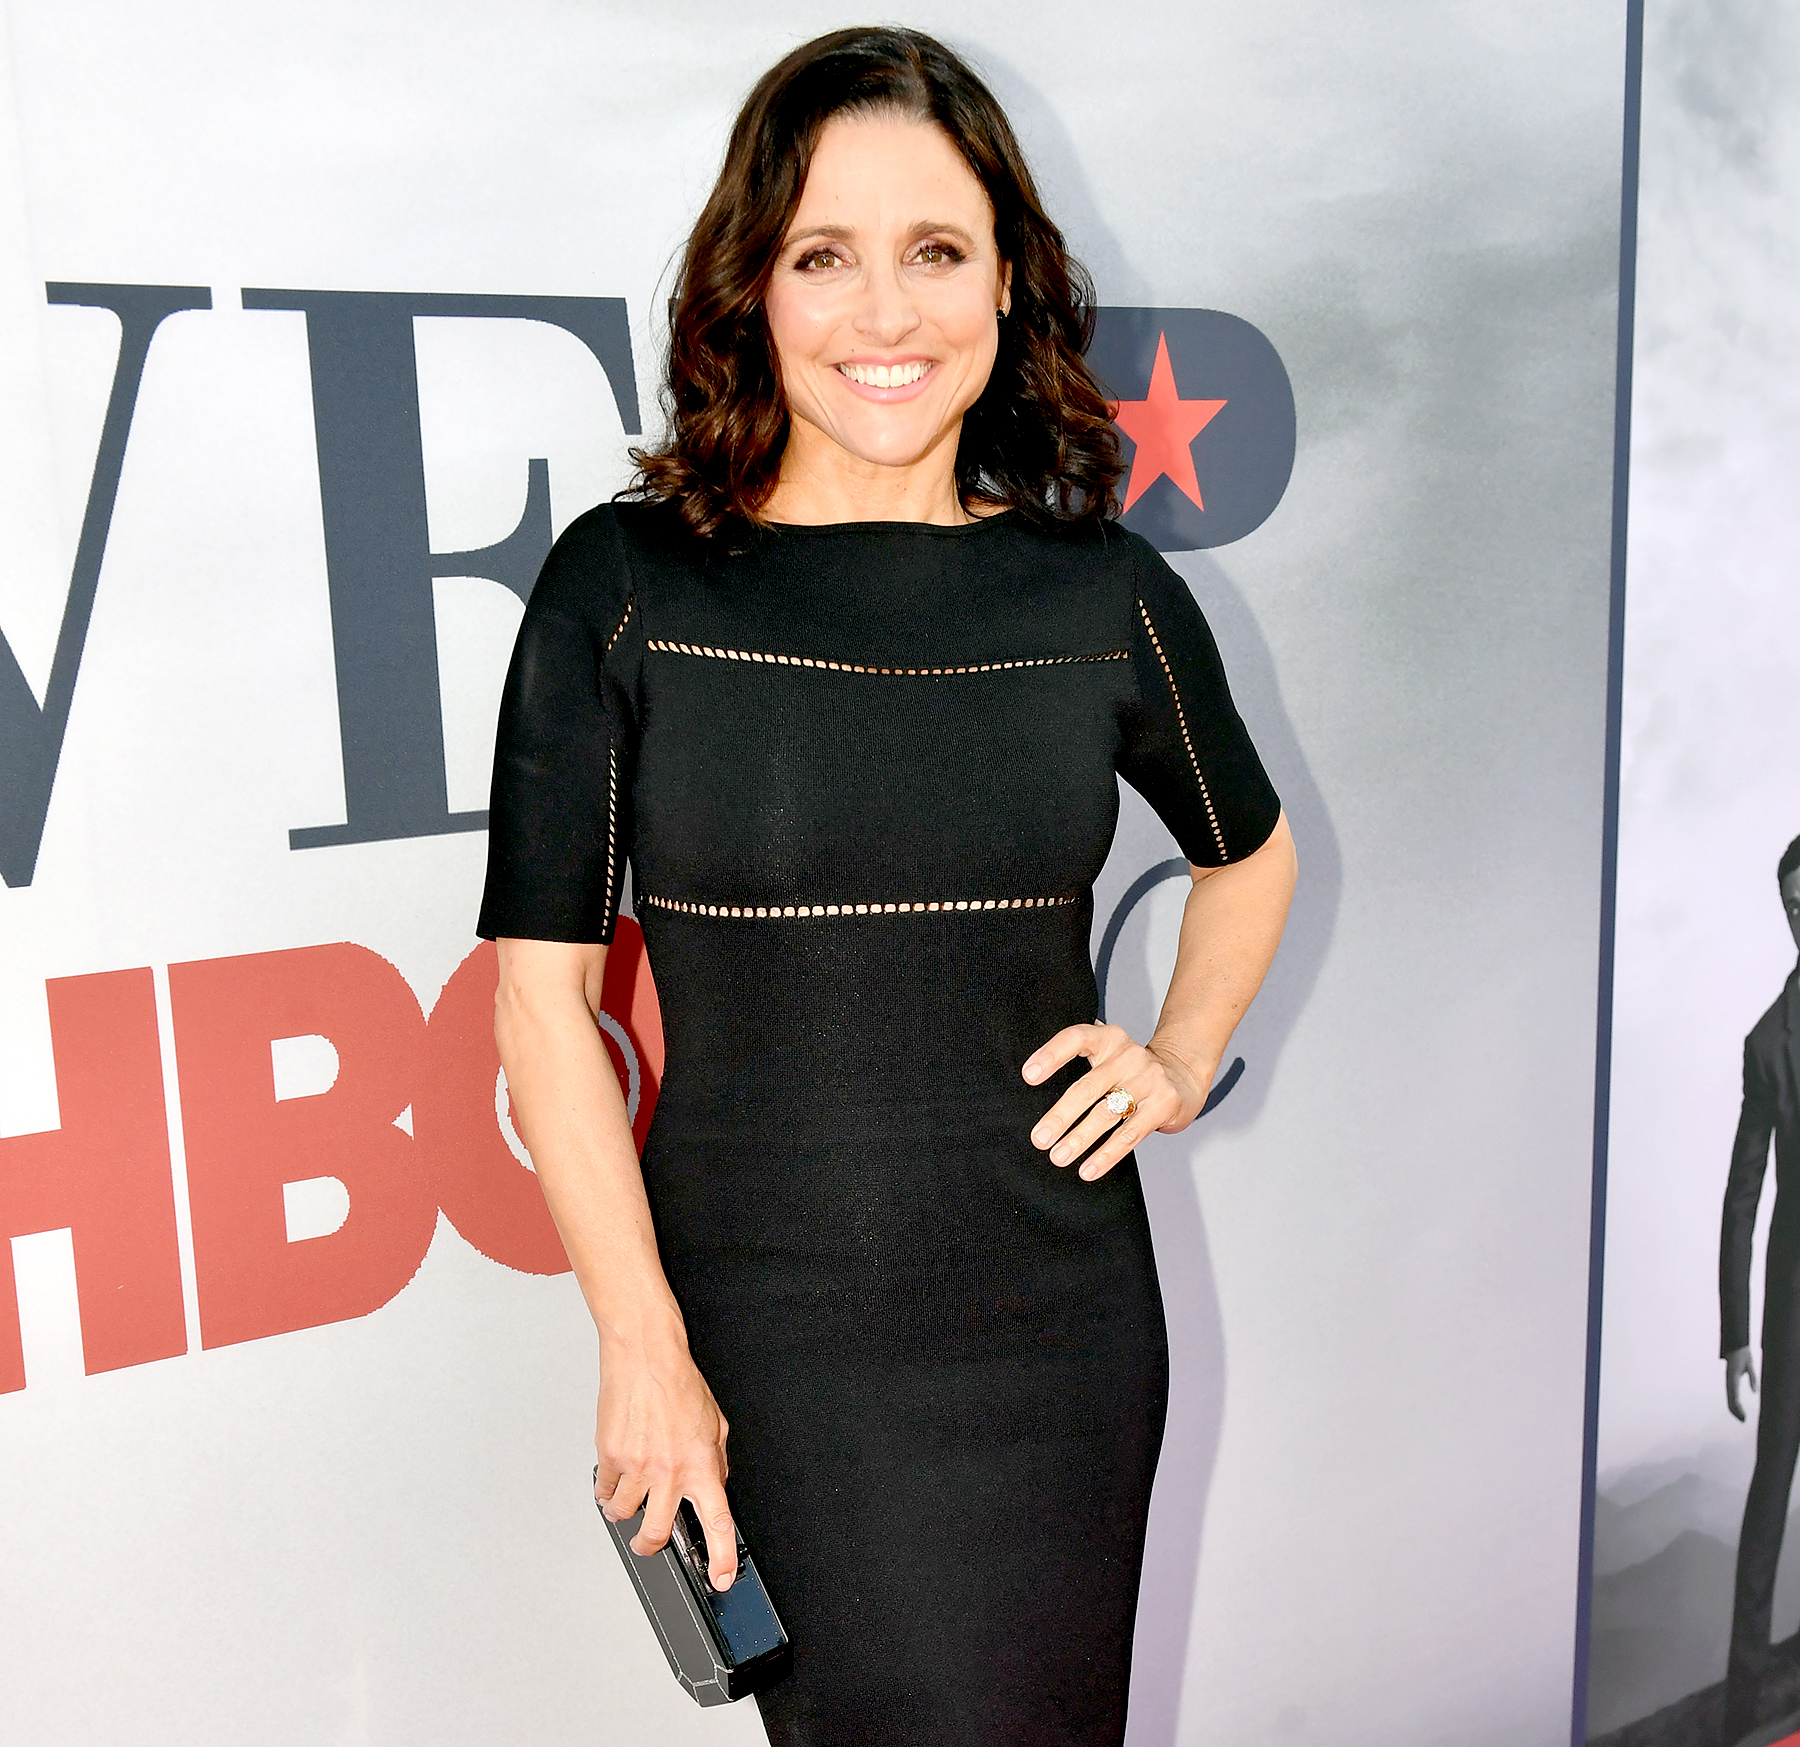 Julia Louis-Dreyfus 'ready to rock' after cancer operation